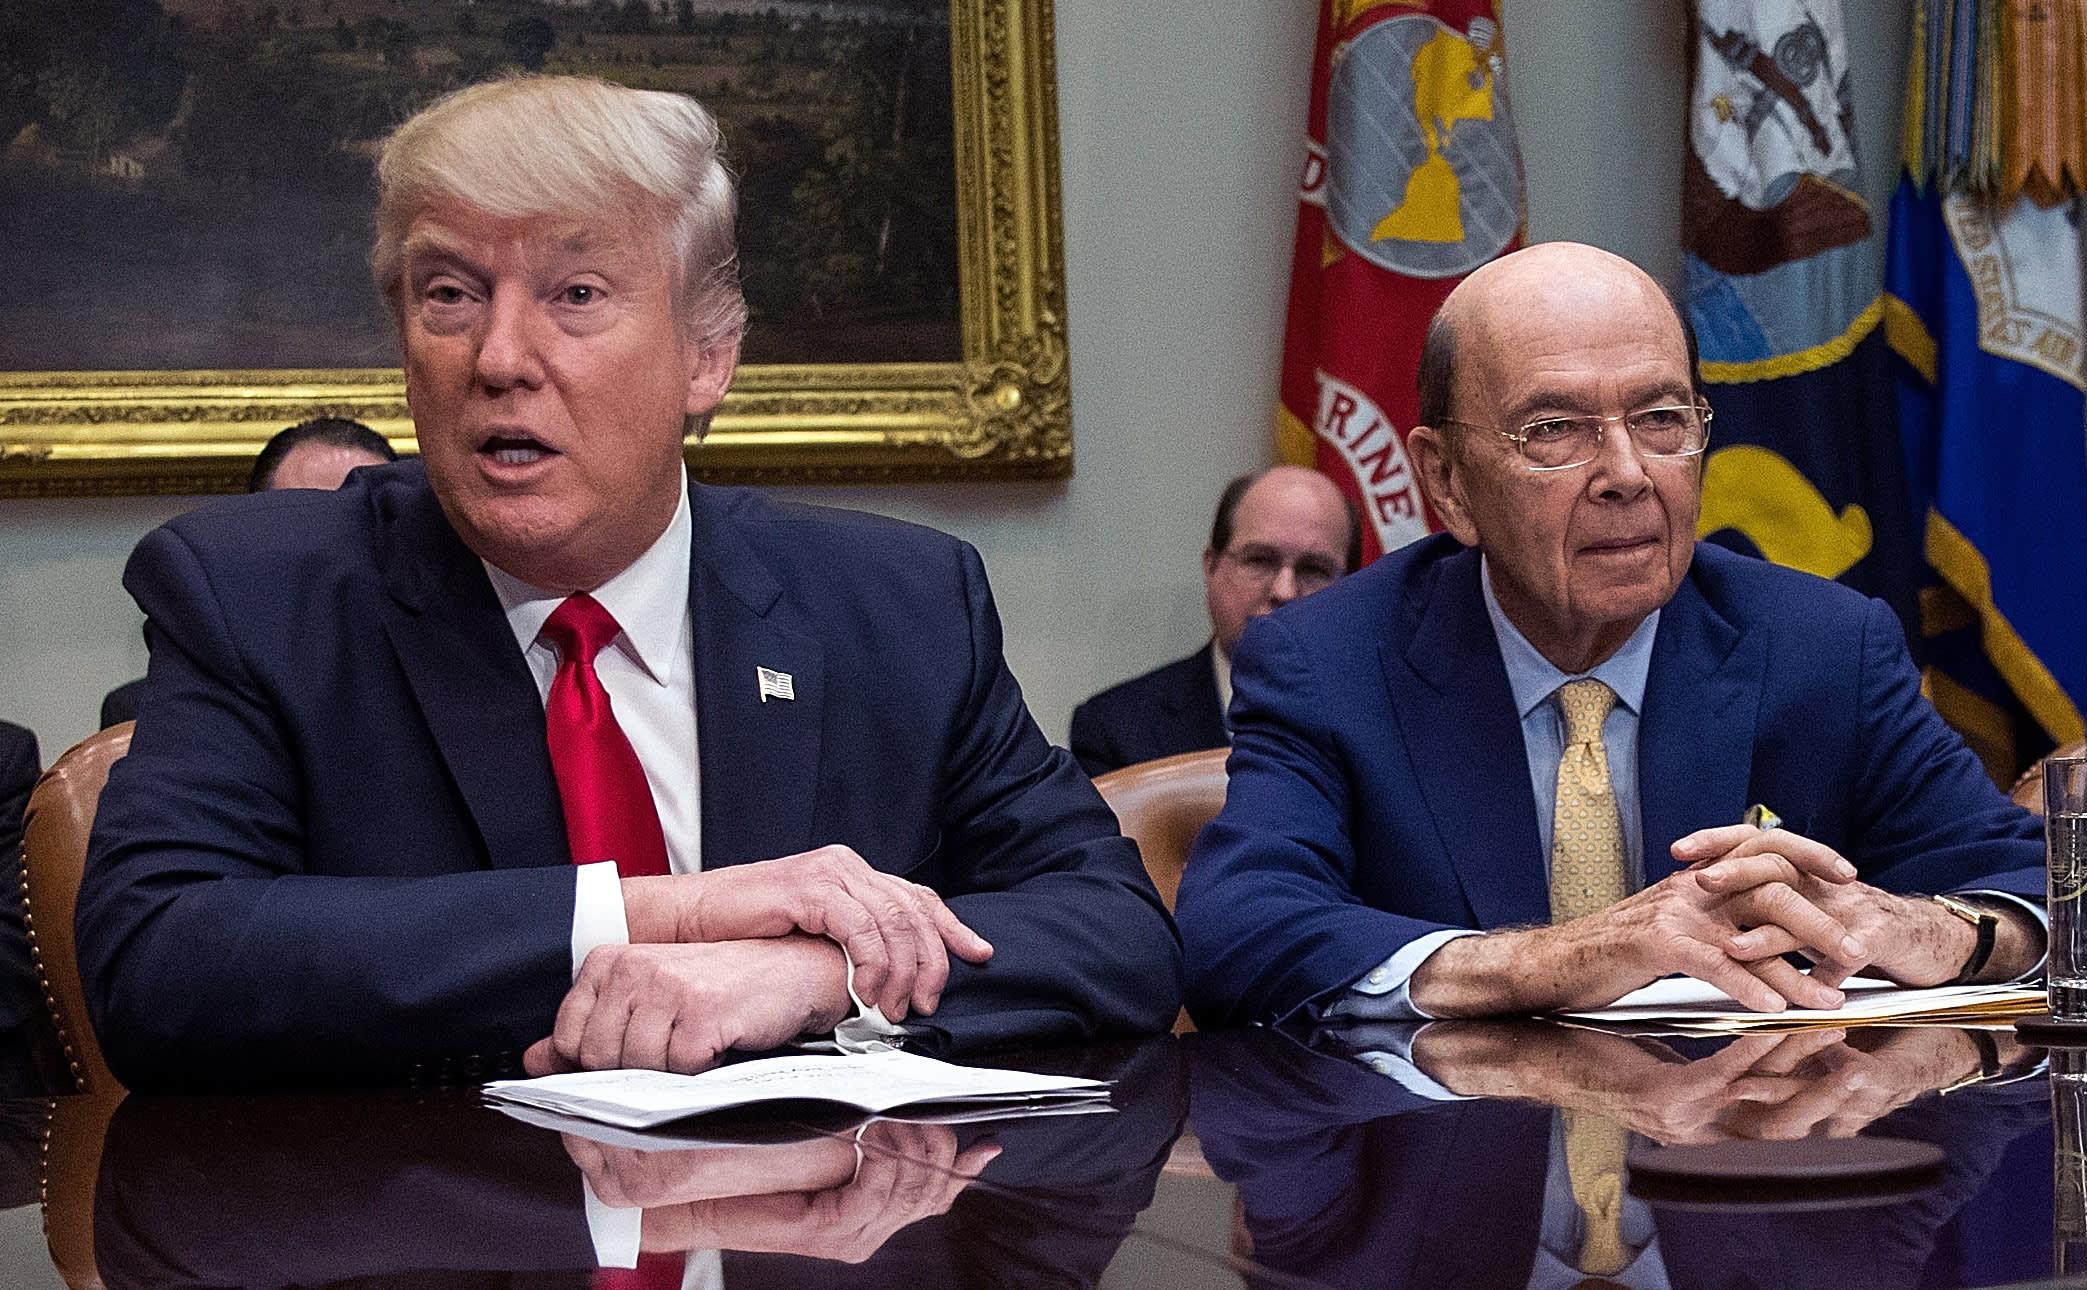 Trump administration says it will print census without citizenship question